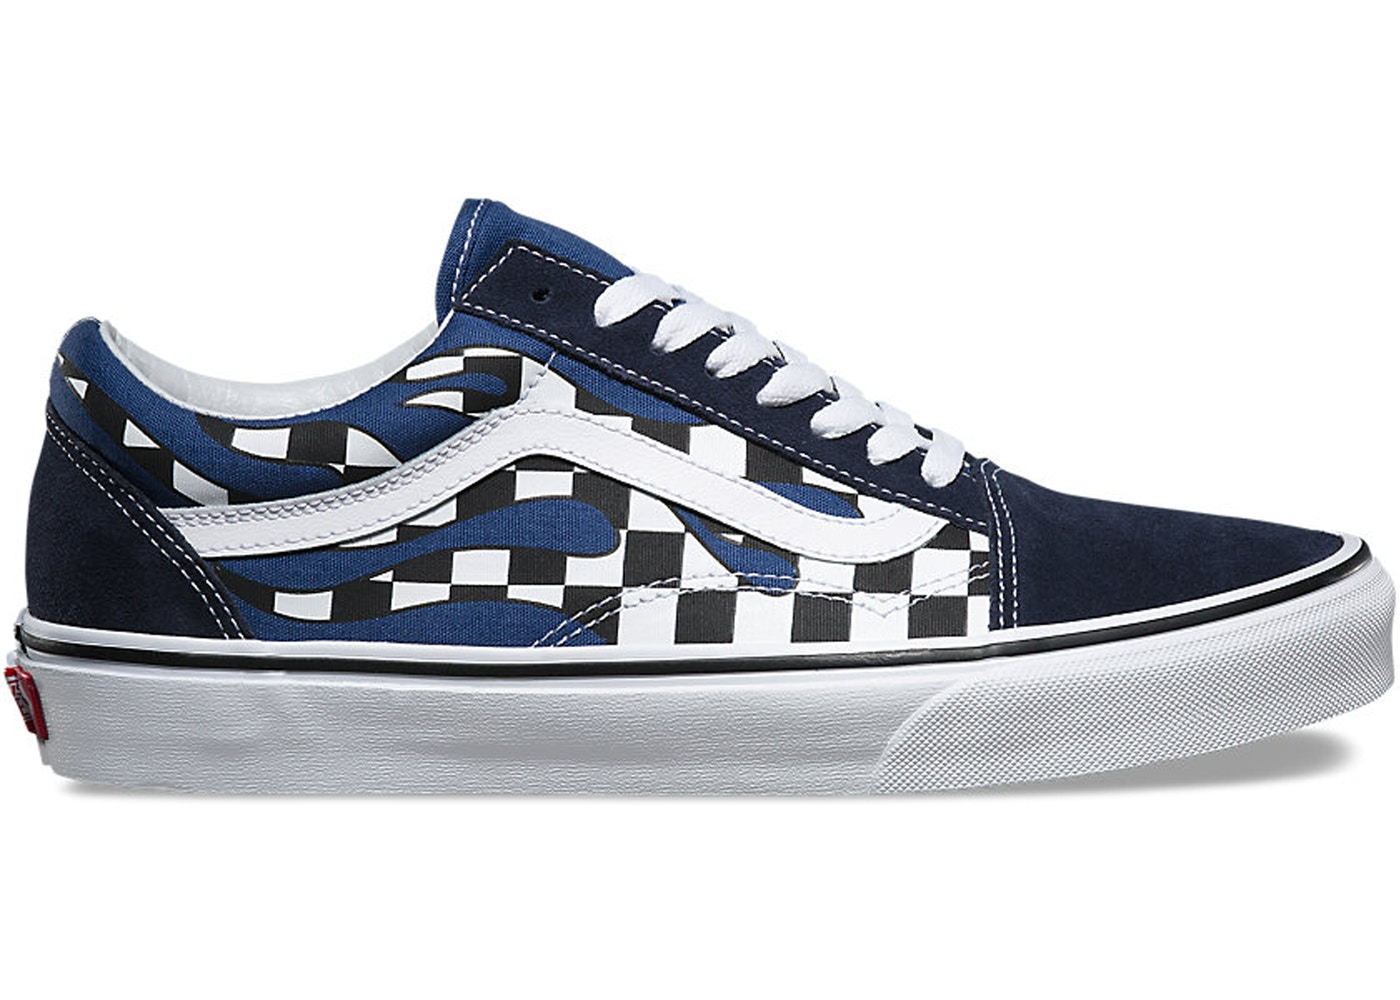 9157f5939cedba Vans Old Skool Checkerboard Flame Blue - TBD